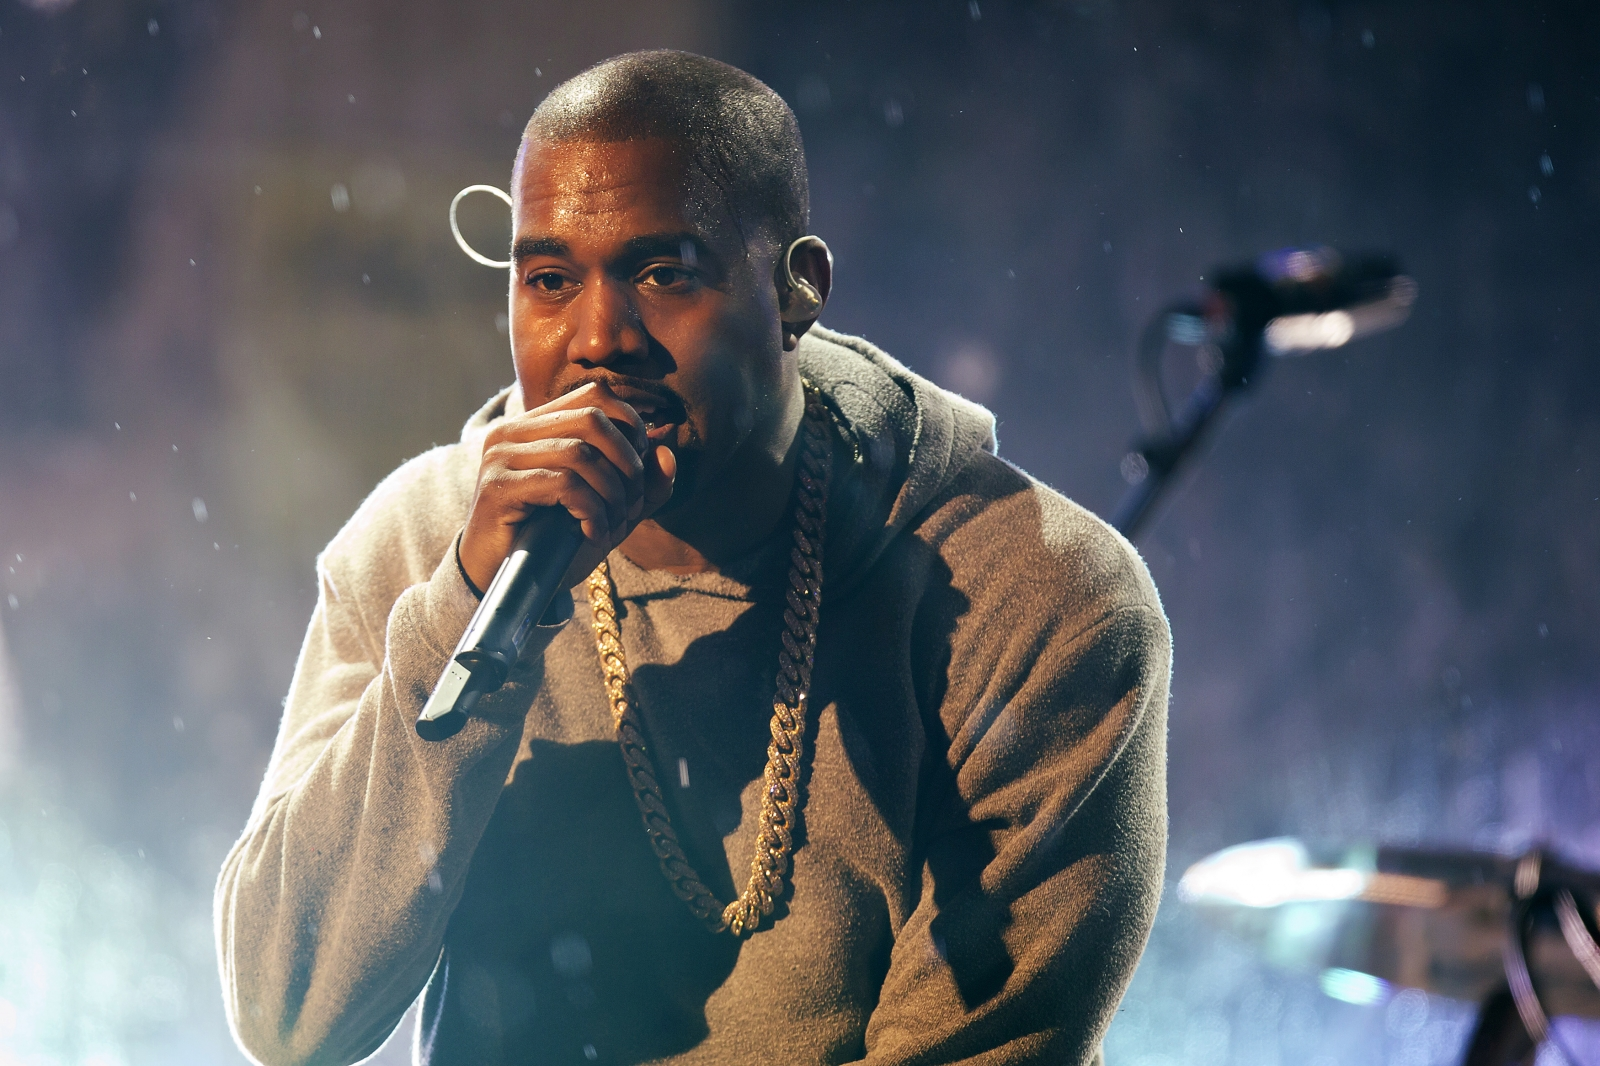 Kanye West cuts concert short after Kim Kardashian robbed at gunpoint